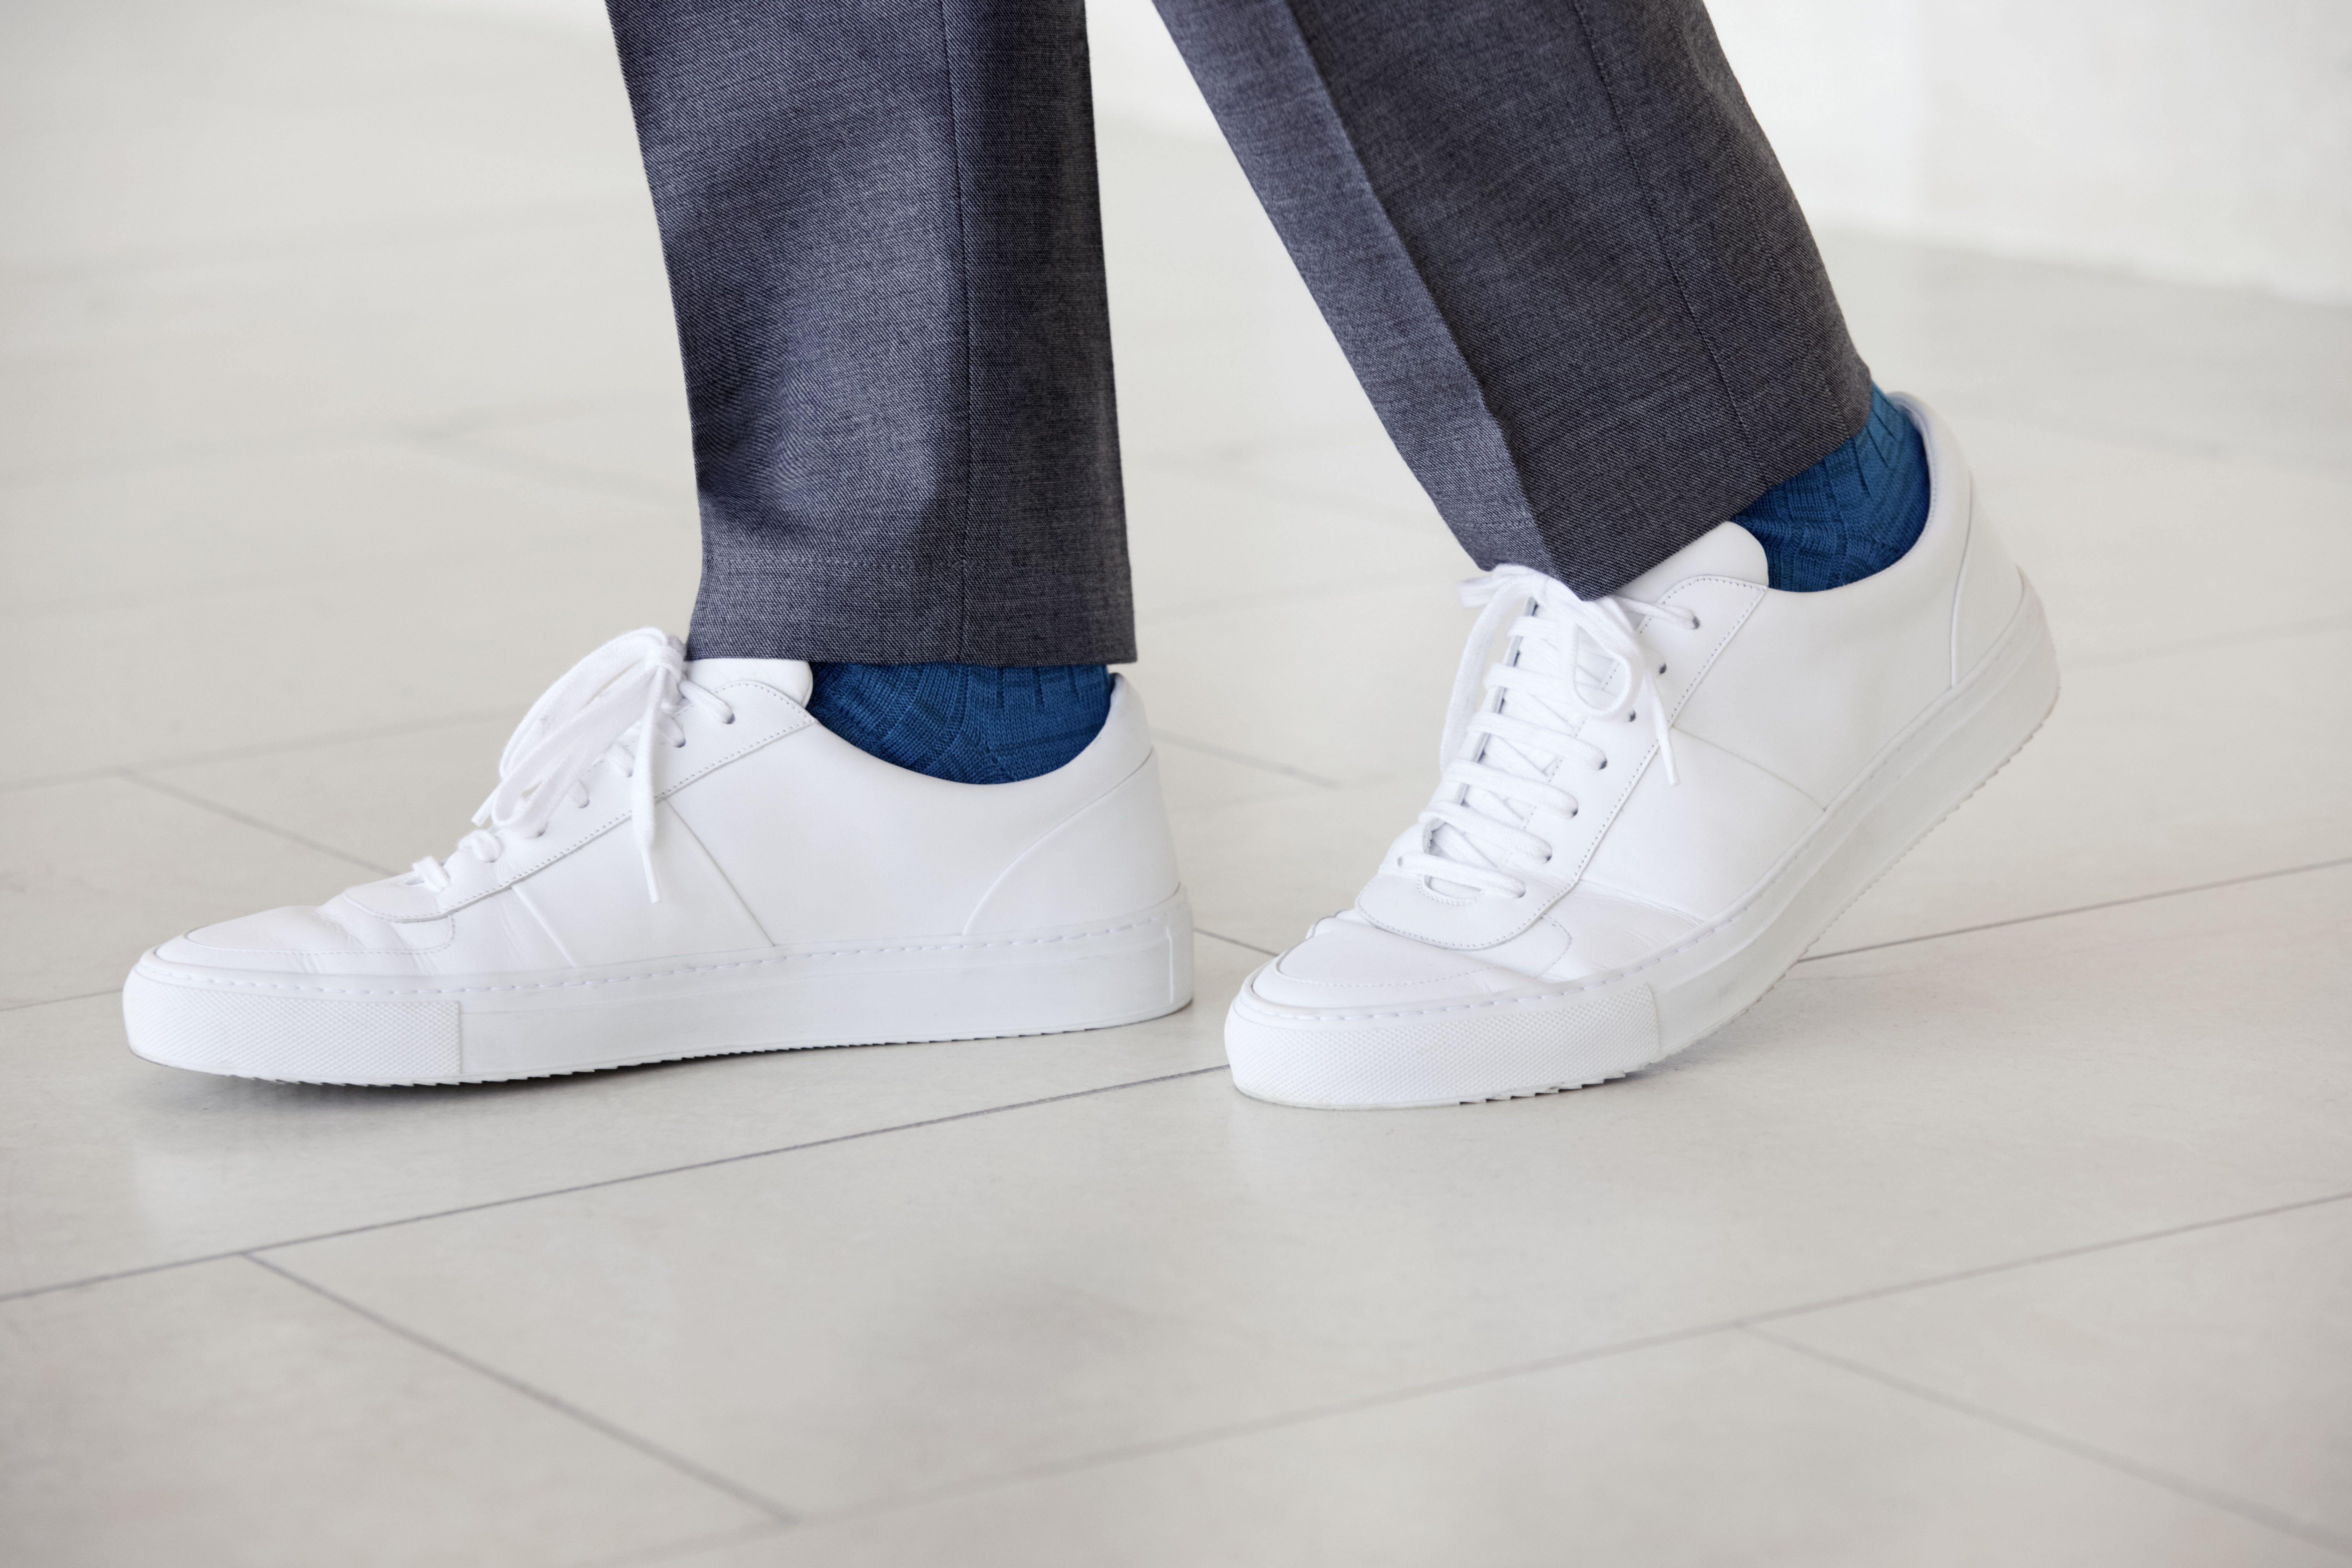 A style from Mr P's new footwear range